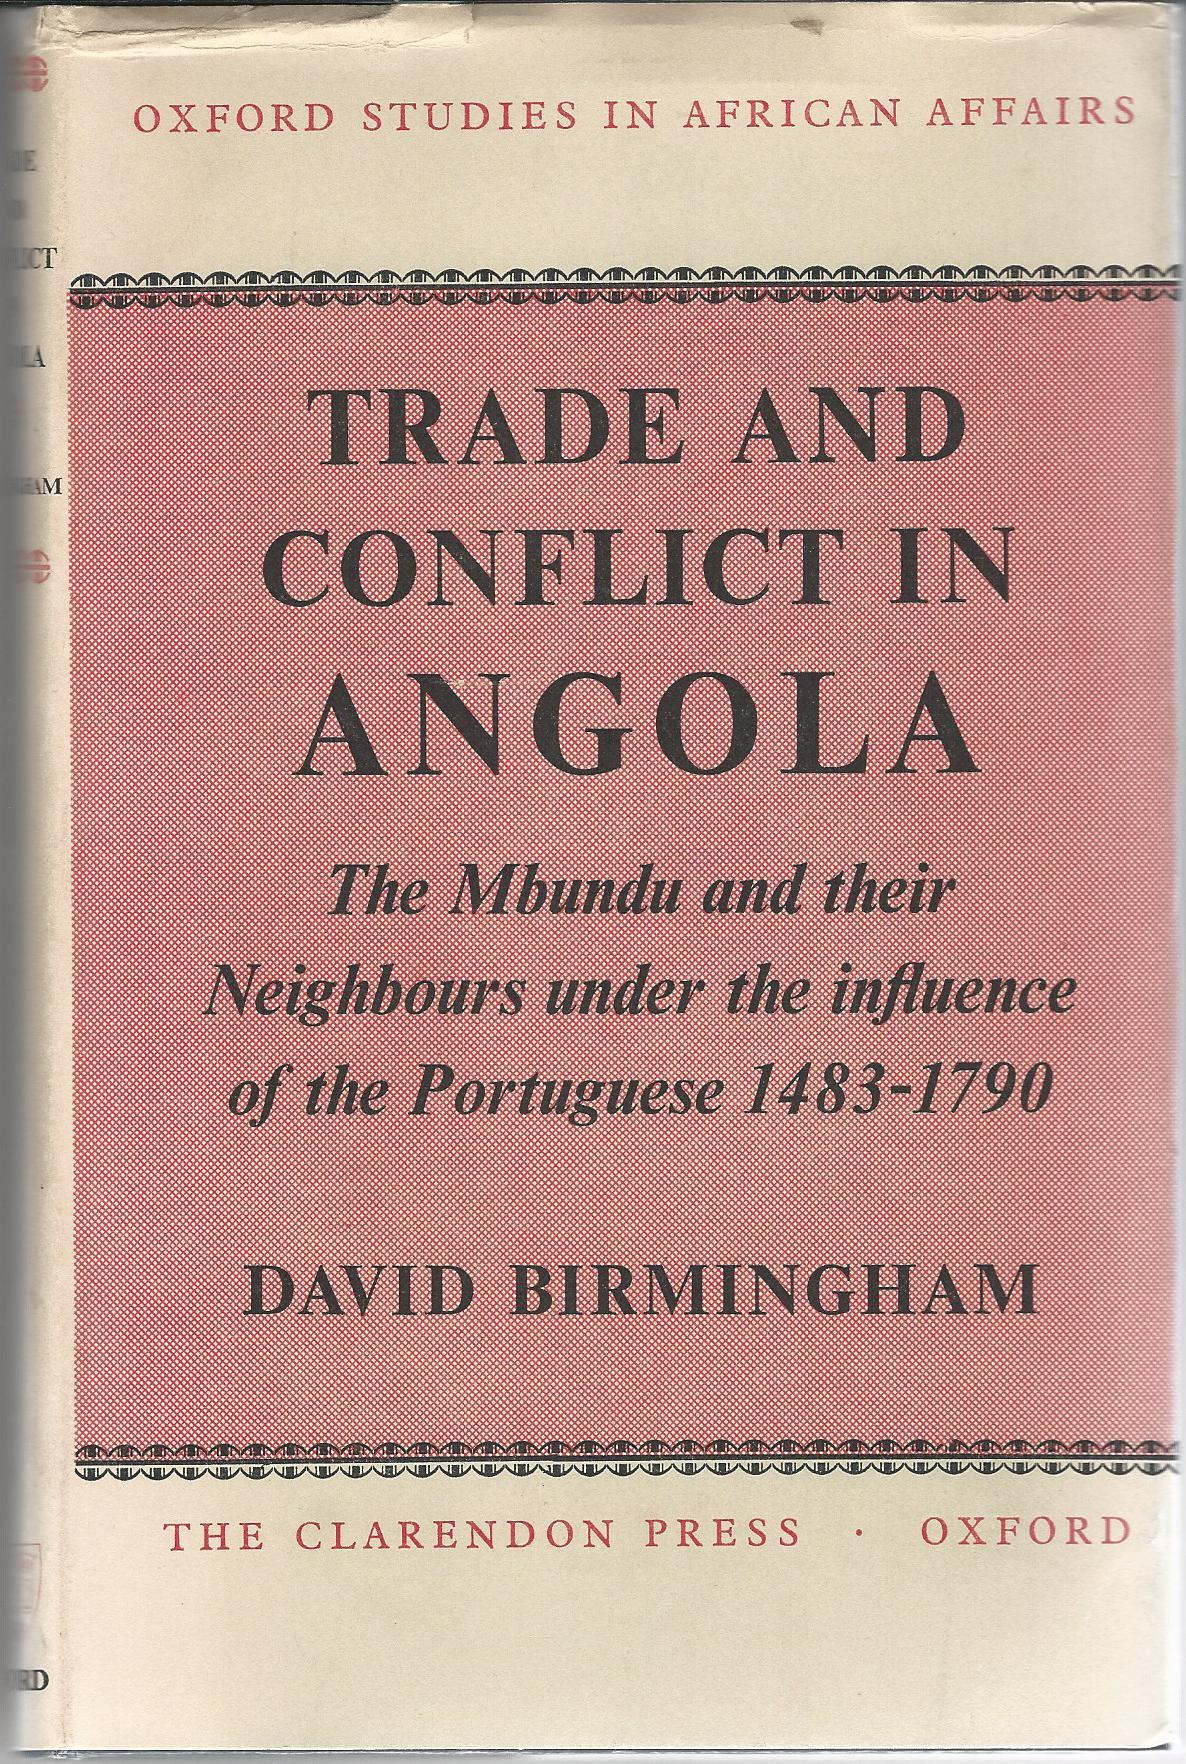 Image for Trade and Conflict in Angola: The Mbundu and their Neighbours under the influence of the Portuguese 1483-1790.